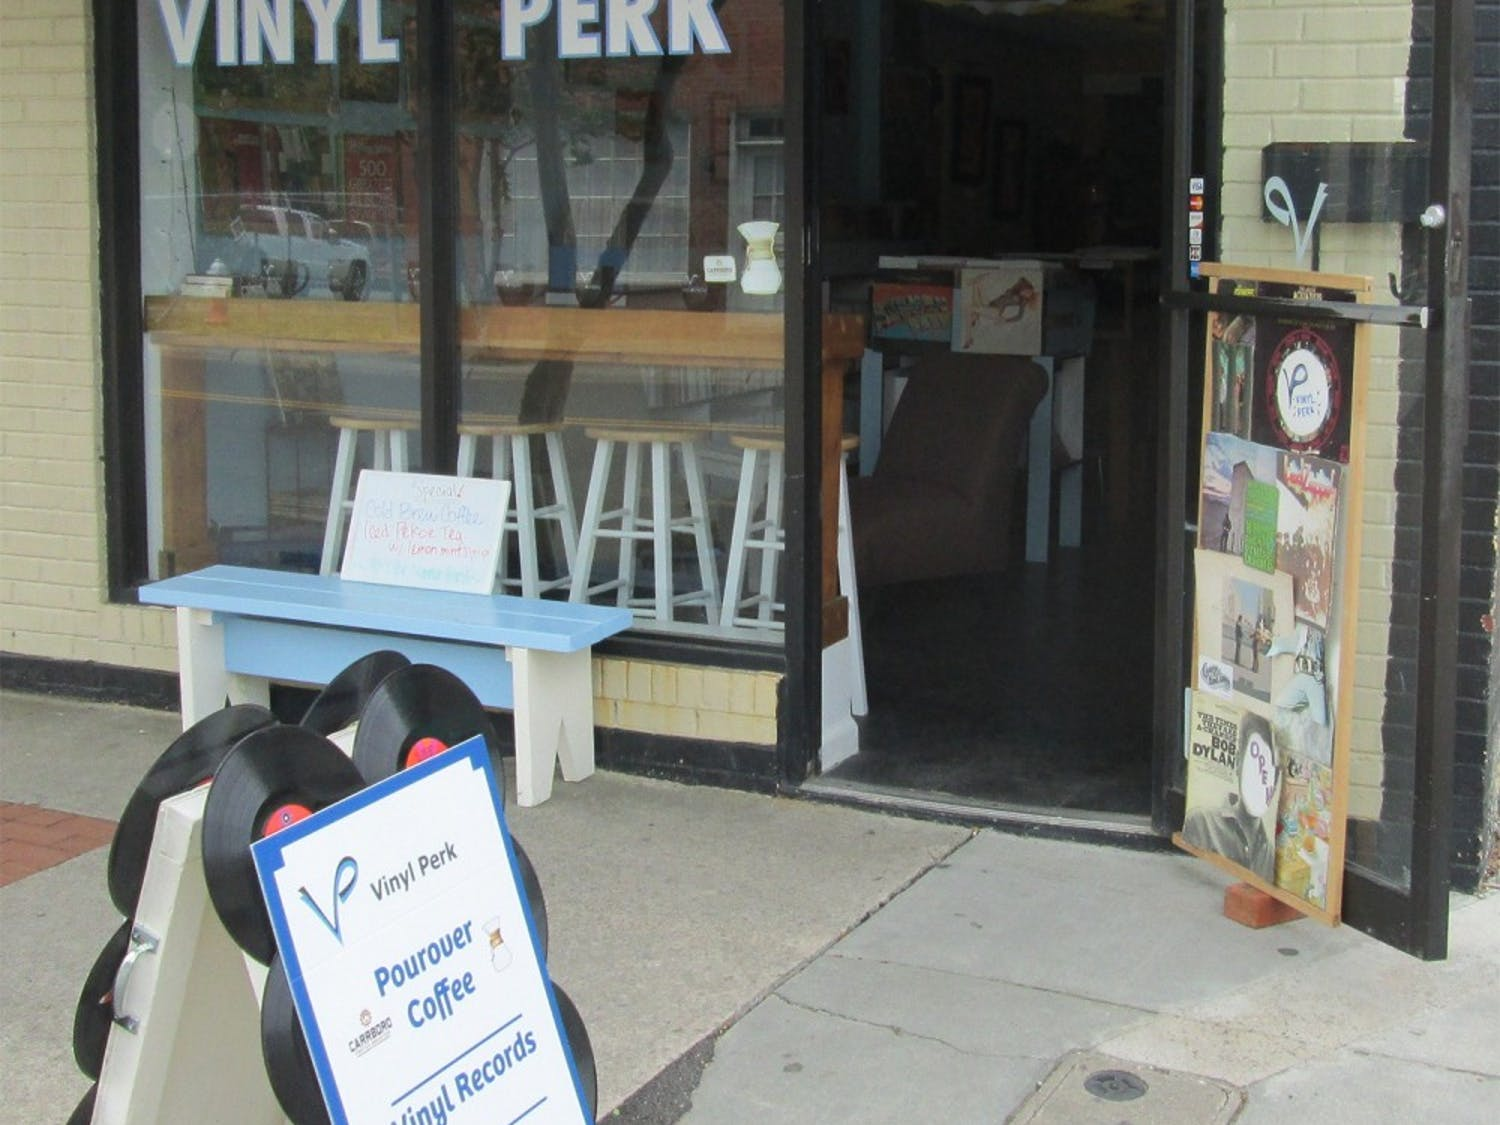 Carrboro's Vinyl Perk will be moving to a new location after its lease ended on June 30. Owner Jay Reeves plans to keep the small business  in the area (Courtesy of Jay Reeves).